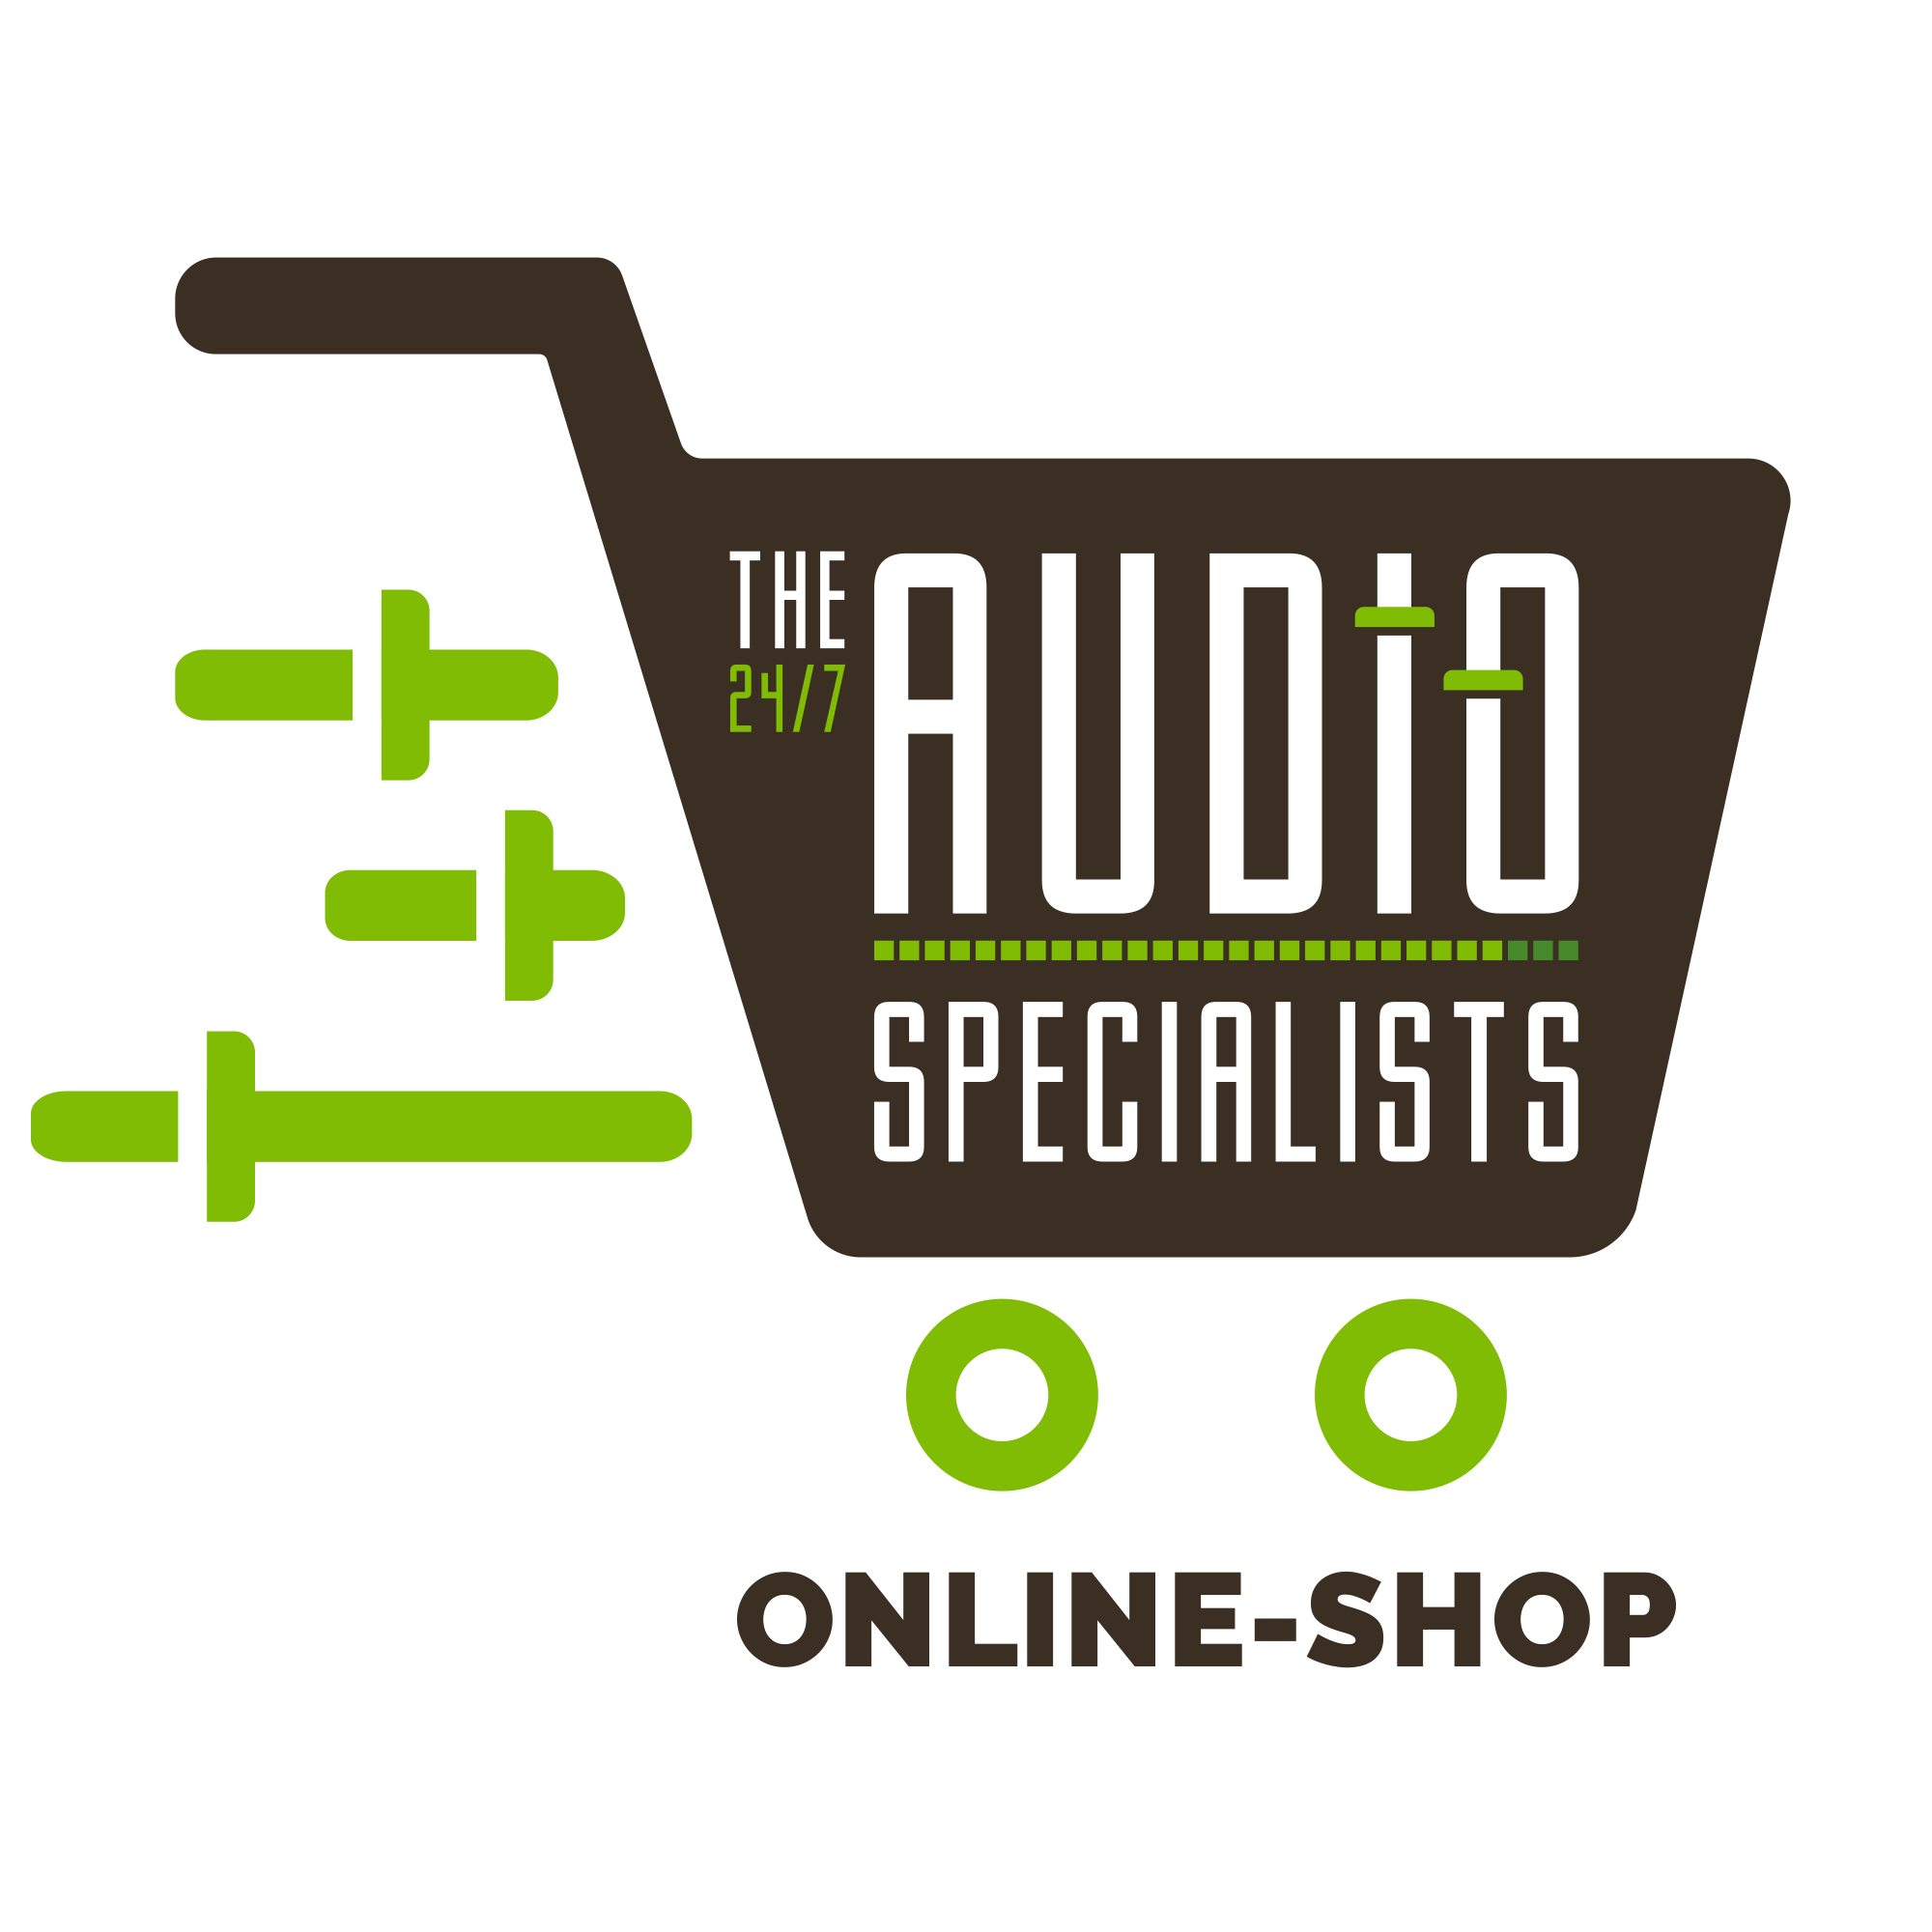 Not your classic webshop, but a dedicated and reliable specialist!